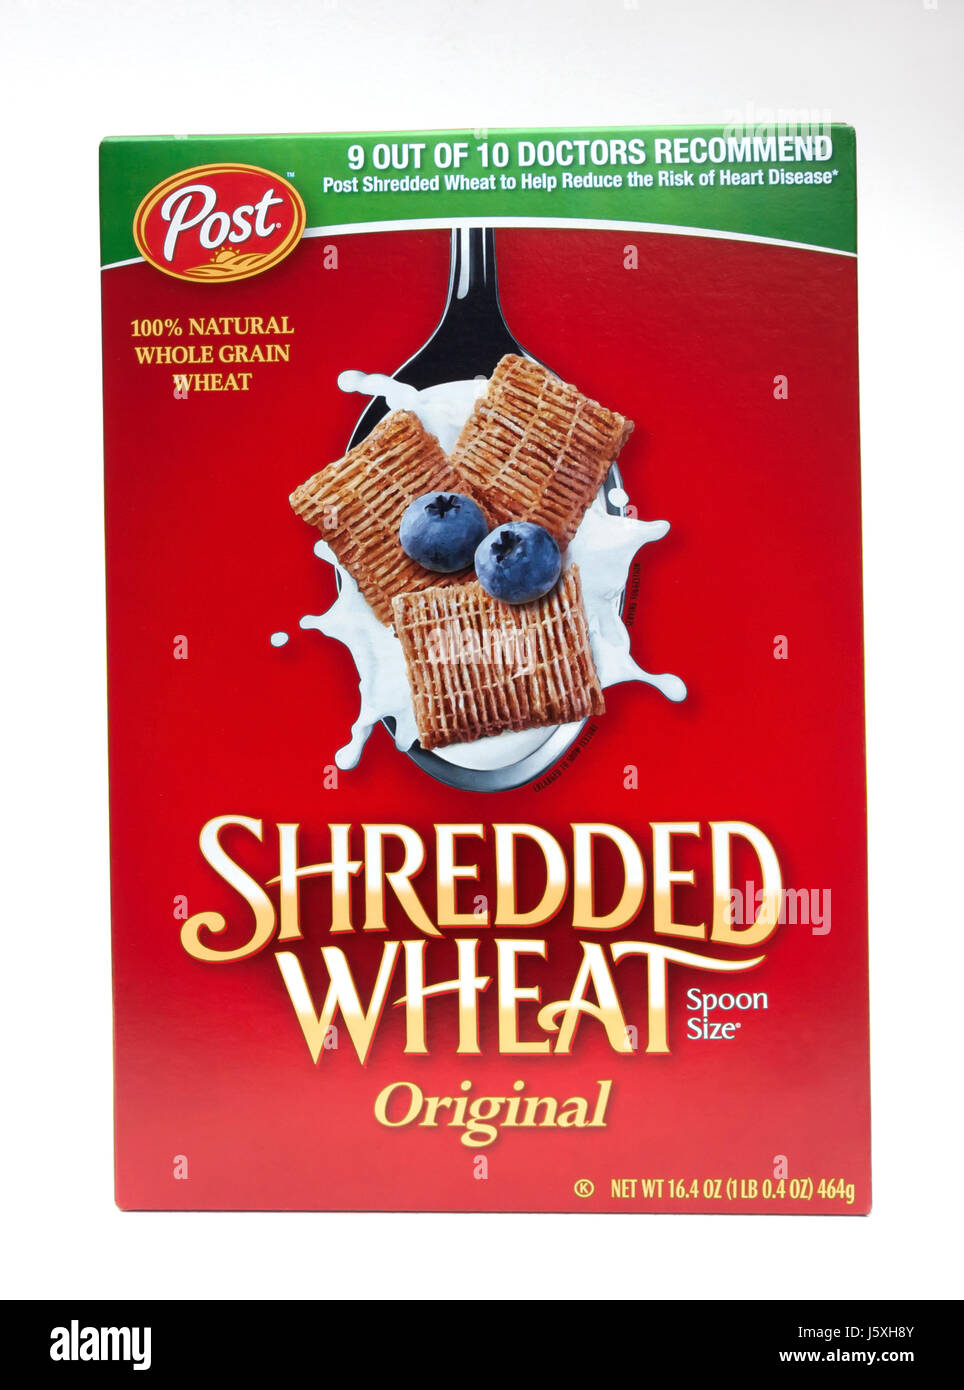 Shredded Wheat Original Cereal box. Stock Photo